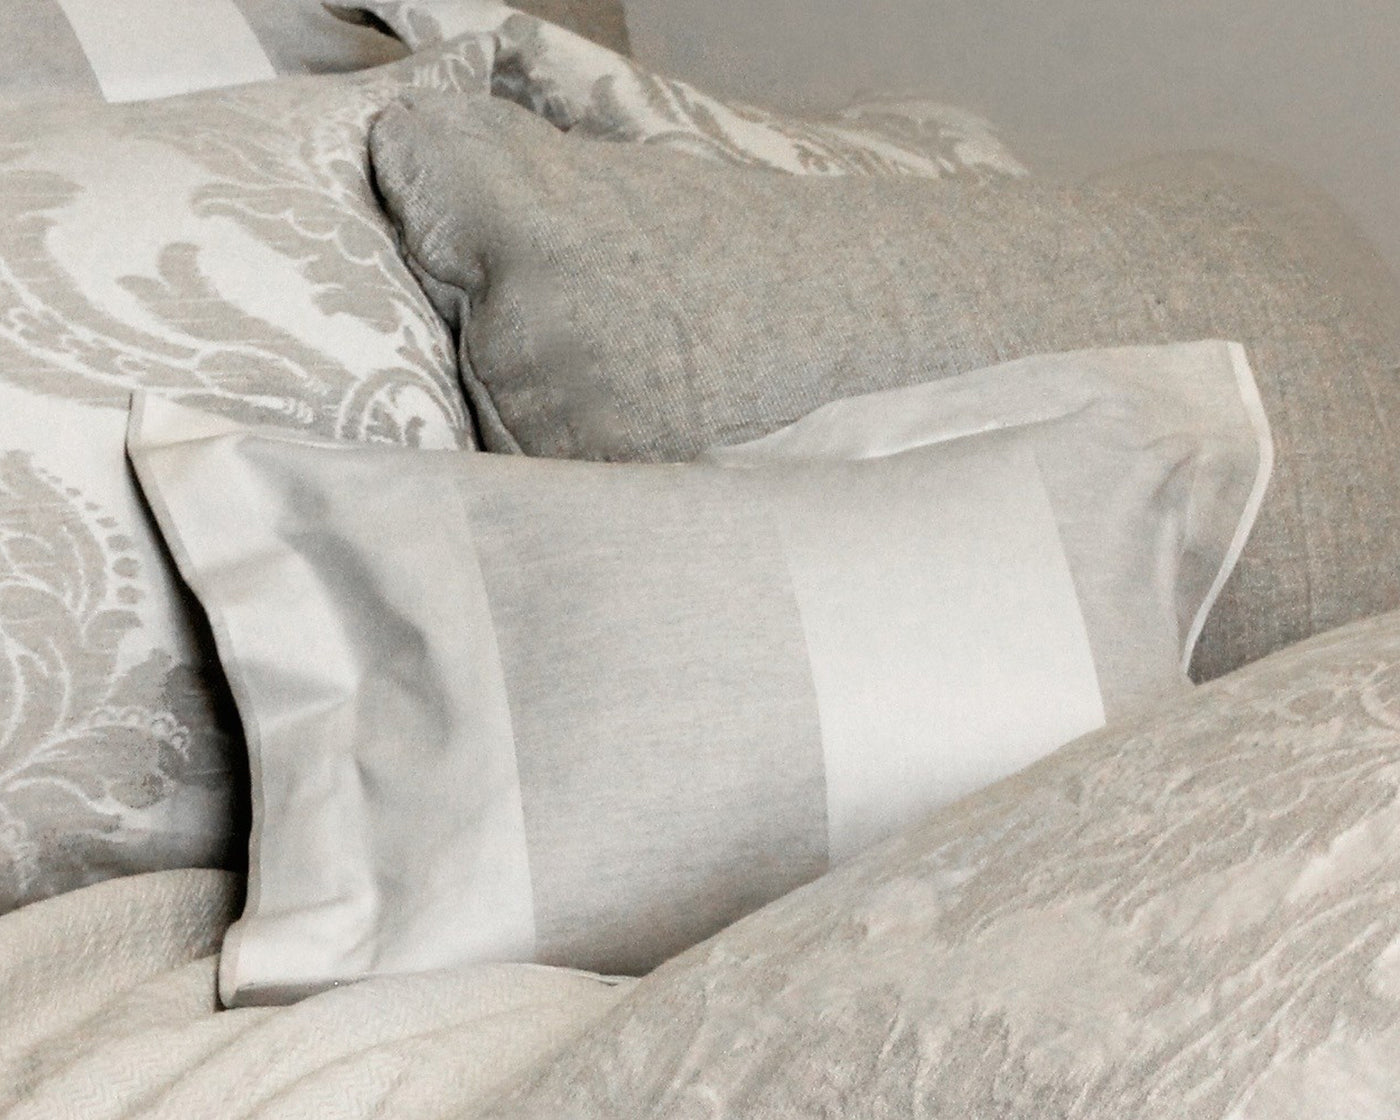 Corso | Pillowcase, Each